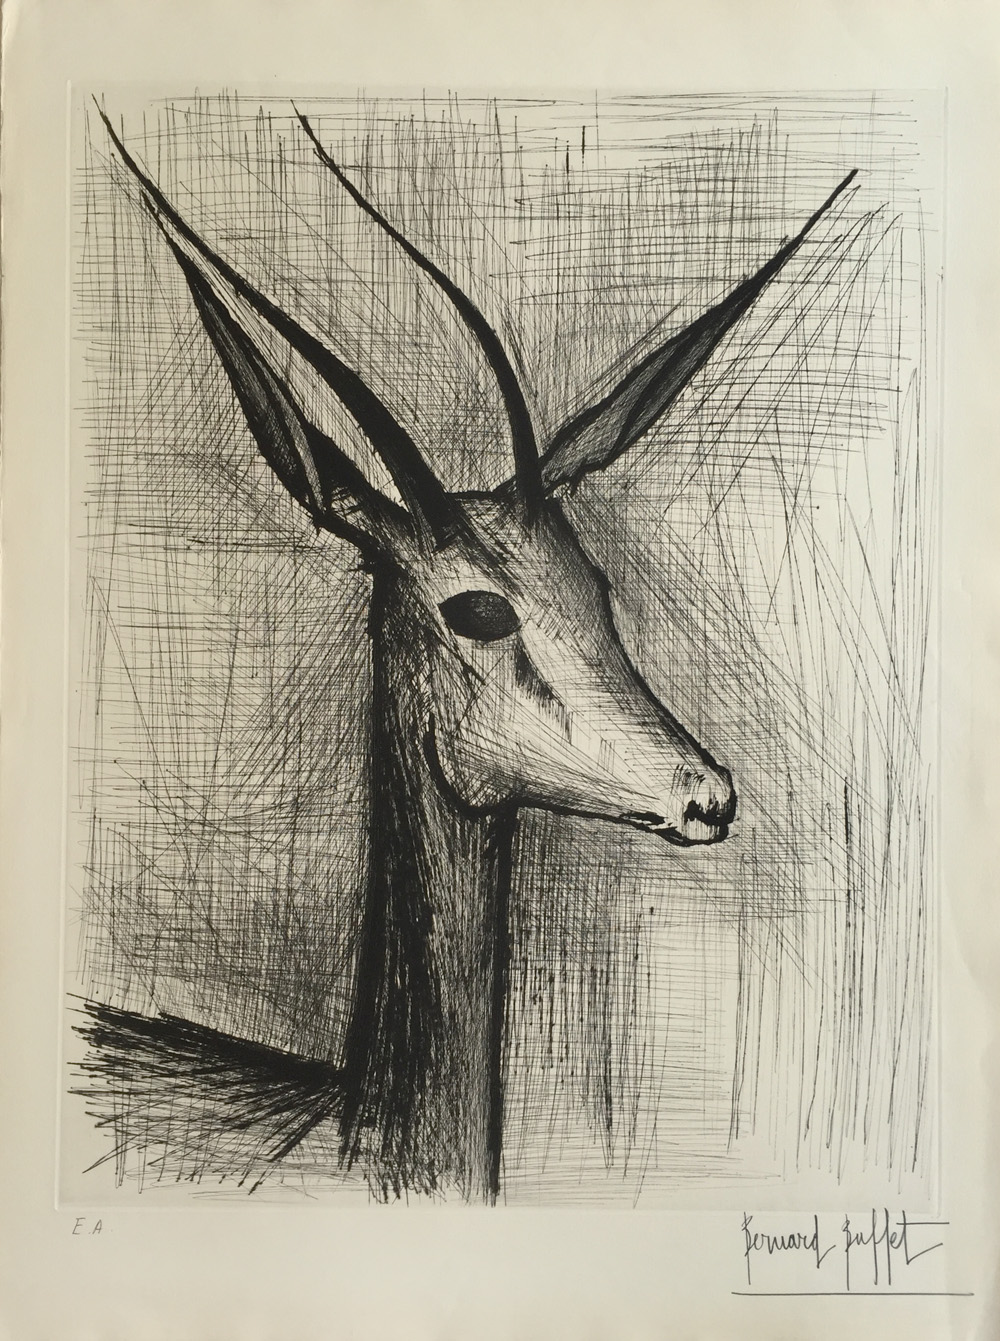 Sensational Bernard Buffet Gazelle For Sale Denis Bloch Fine Art Download Free Architecture Designs Scobabritishbridgeorg